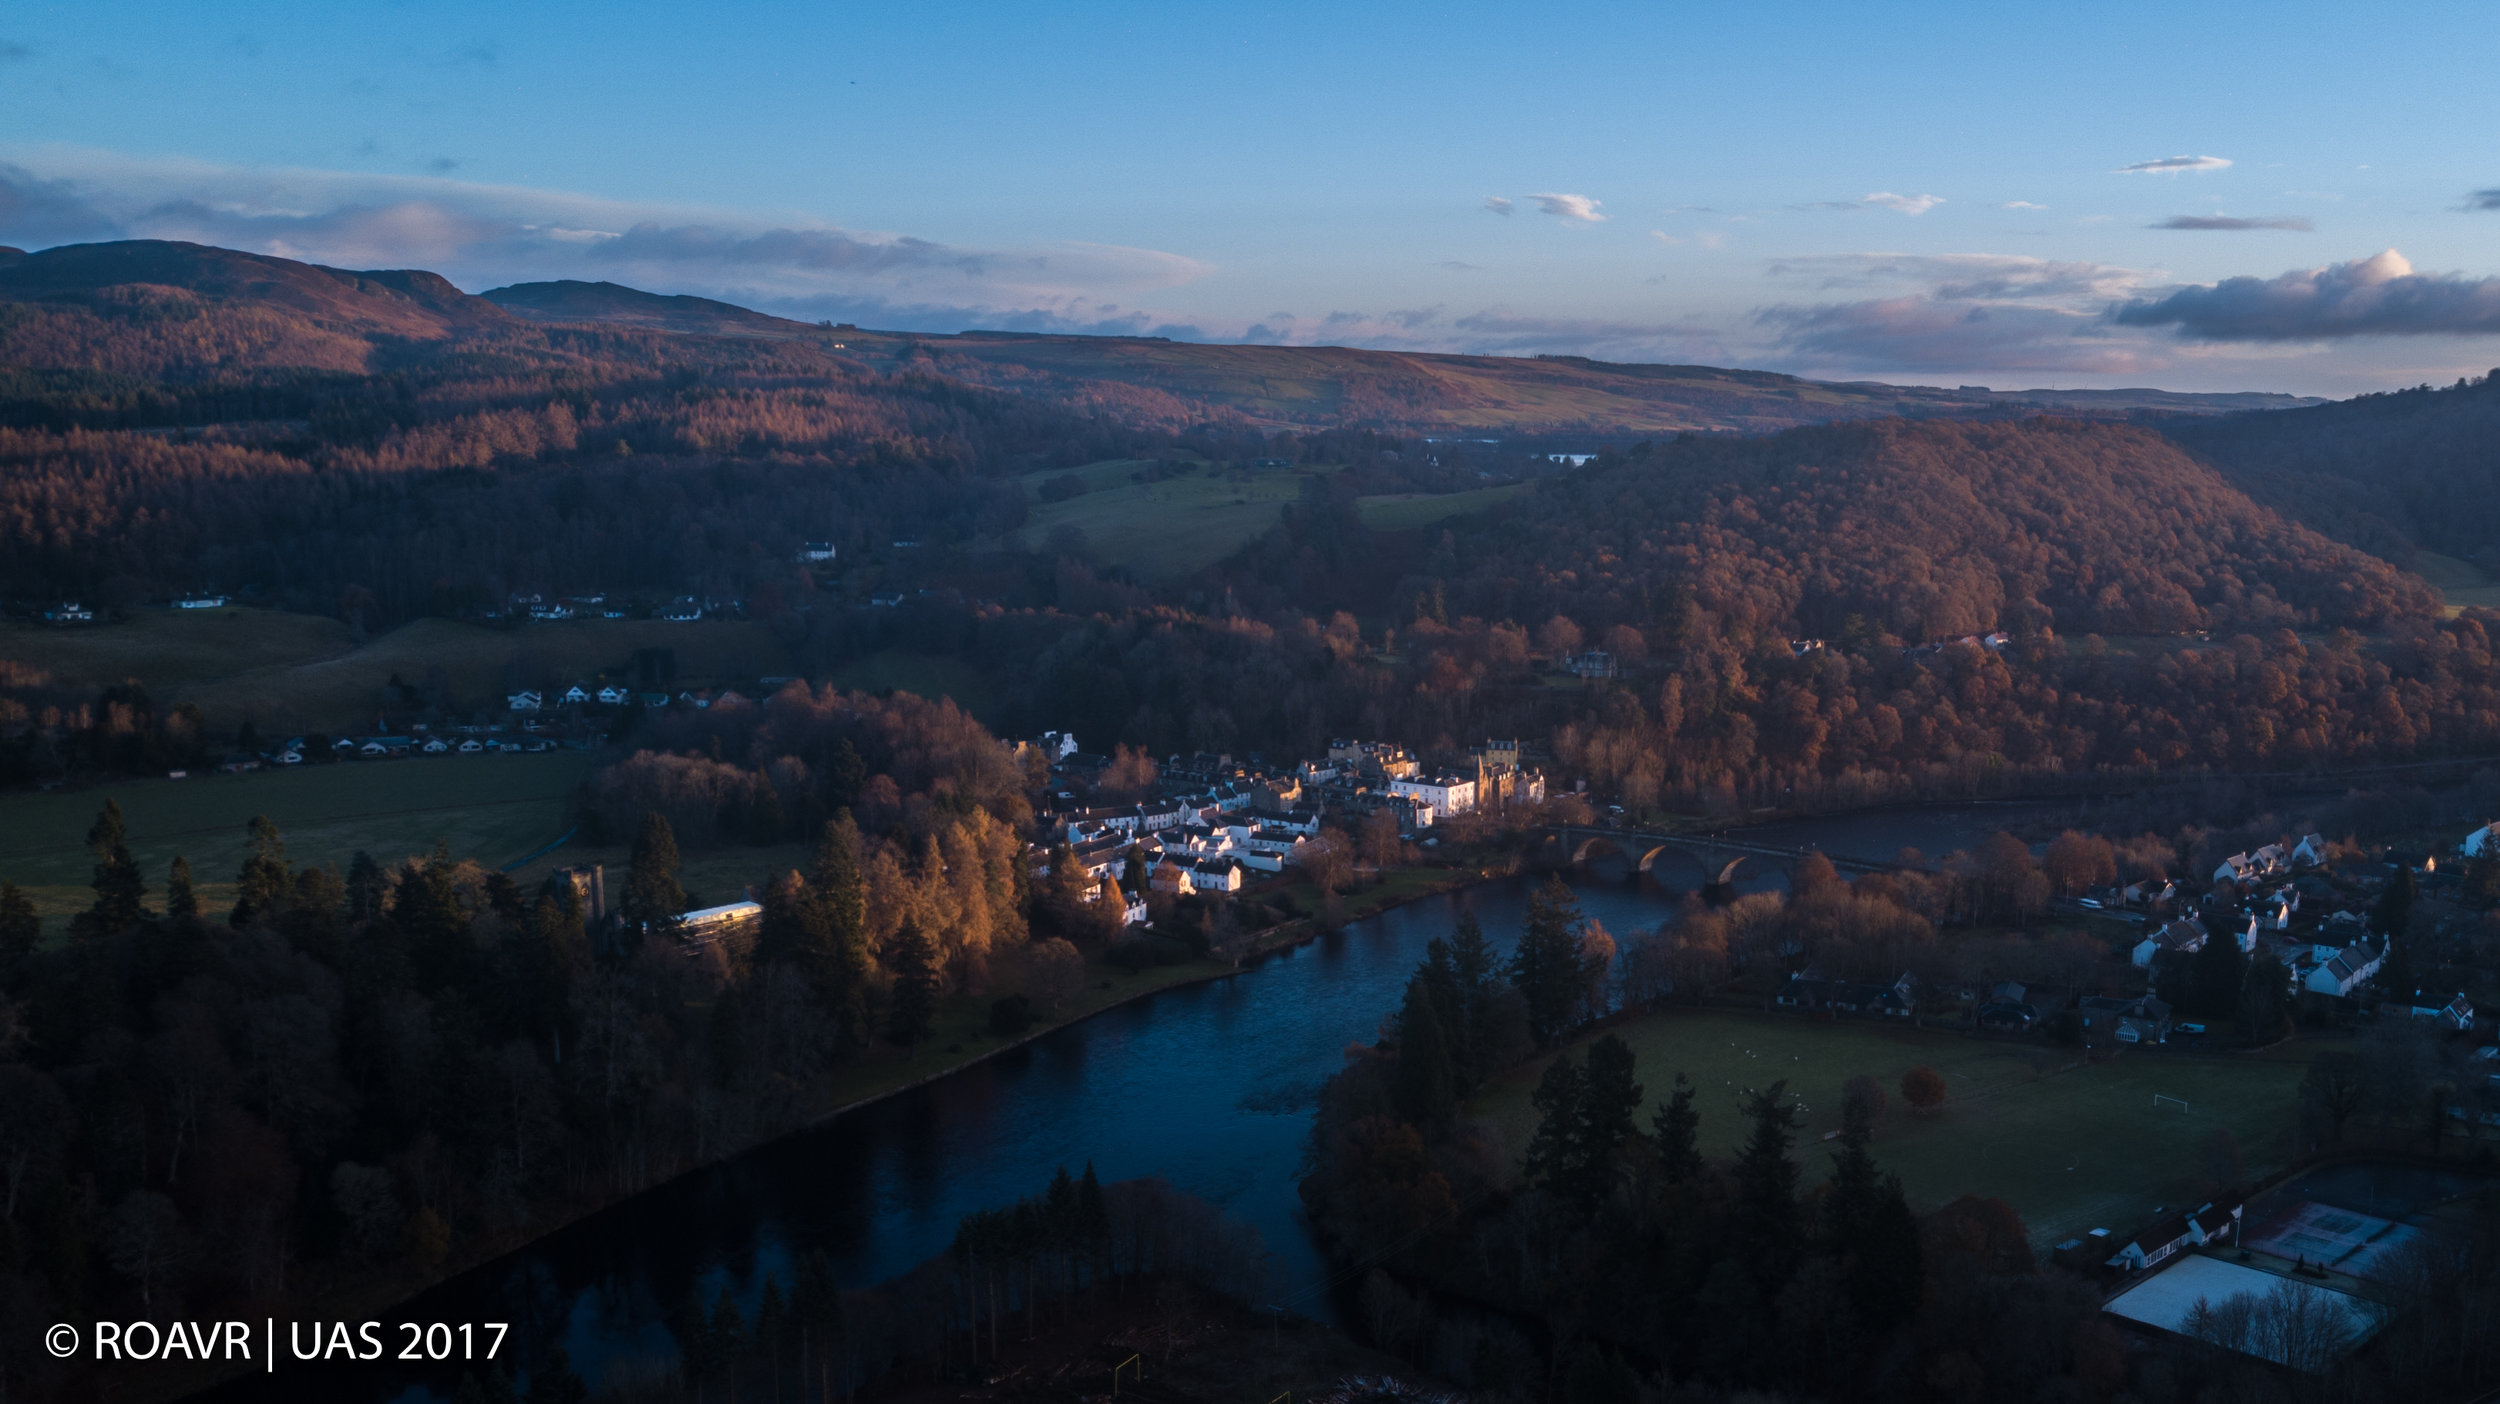 The River Tay at Dunkeld - November 2017